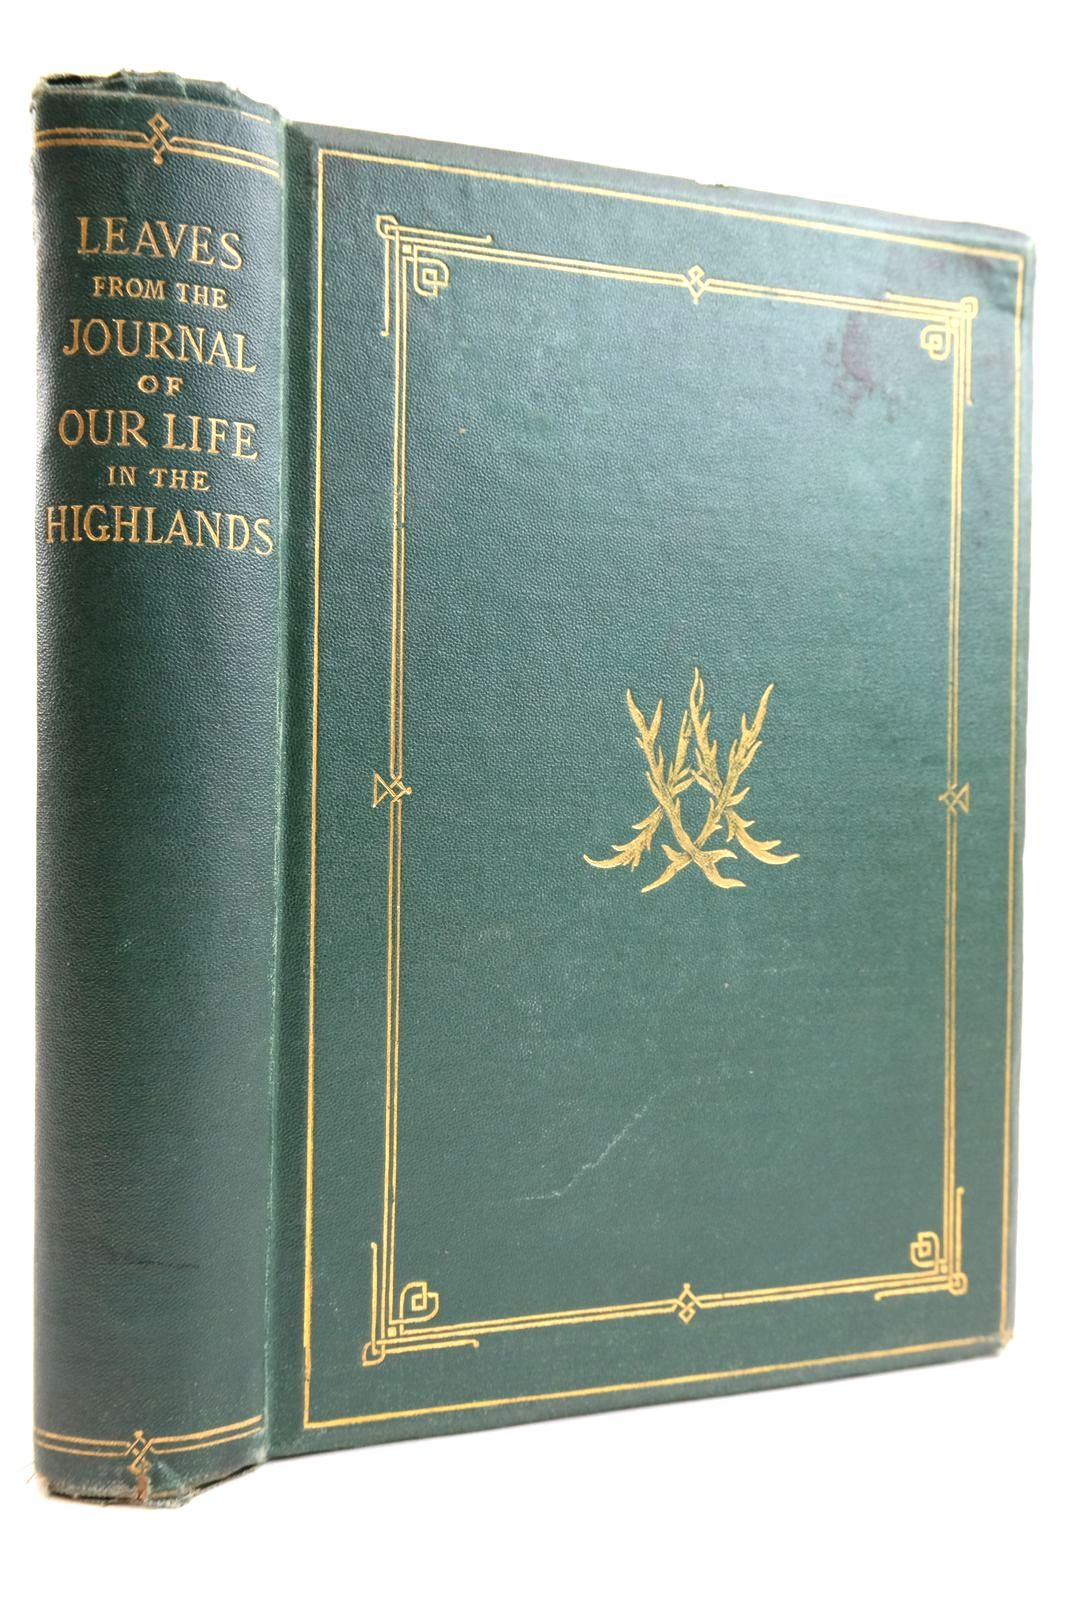 Photo of LEAVES FROM THE JOURNAL OF OUR LIFE IN THE HIGHLANDS written by Victoria, Queen Helps, Arthur published by Smith, Elder & Co. (STOCK CODE: 2133691)  for sale by Stella & Rose's Books